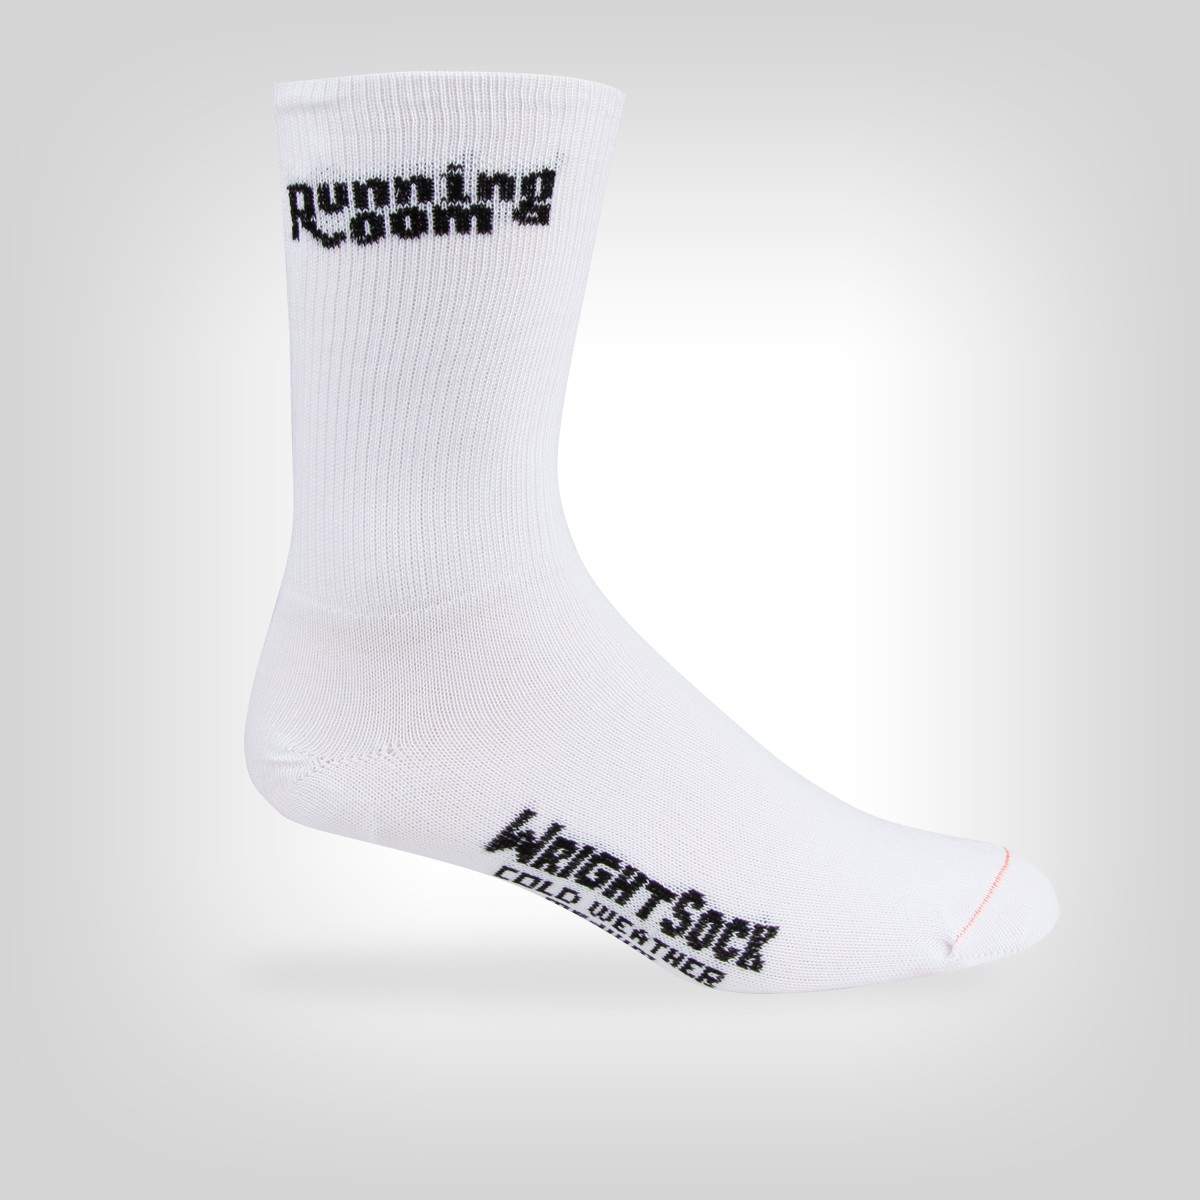 WrightSock Thermastat Crew 576 - Medium